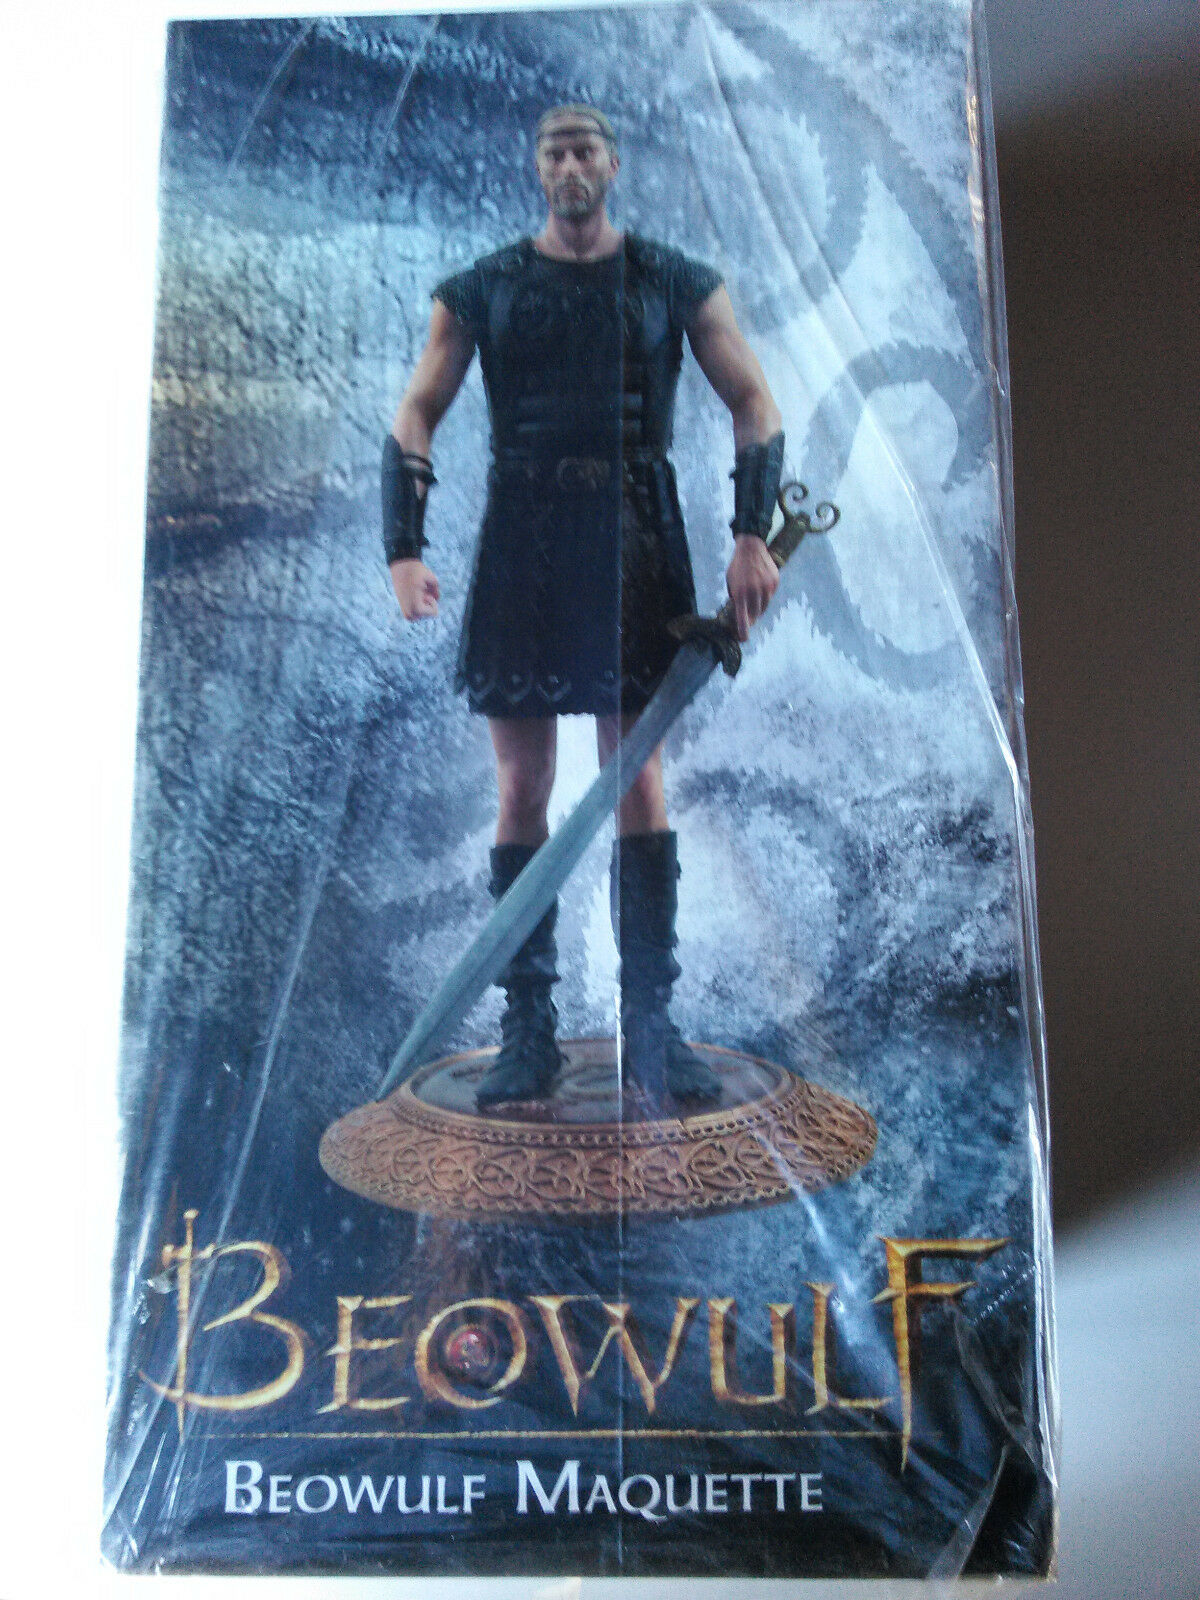 Beowulf maquette neue 159   2000